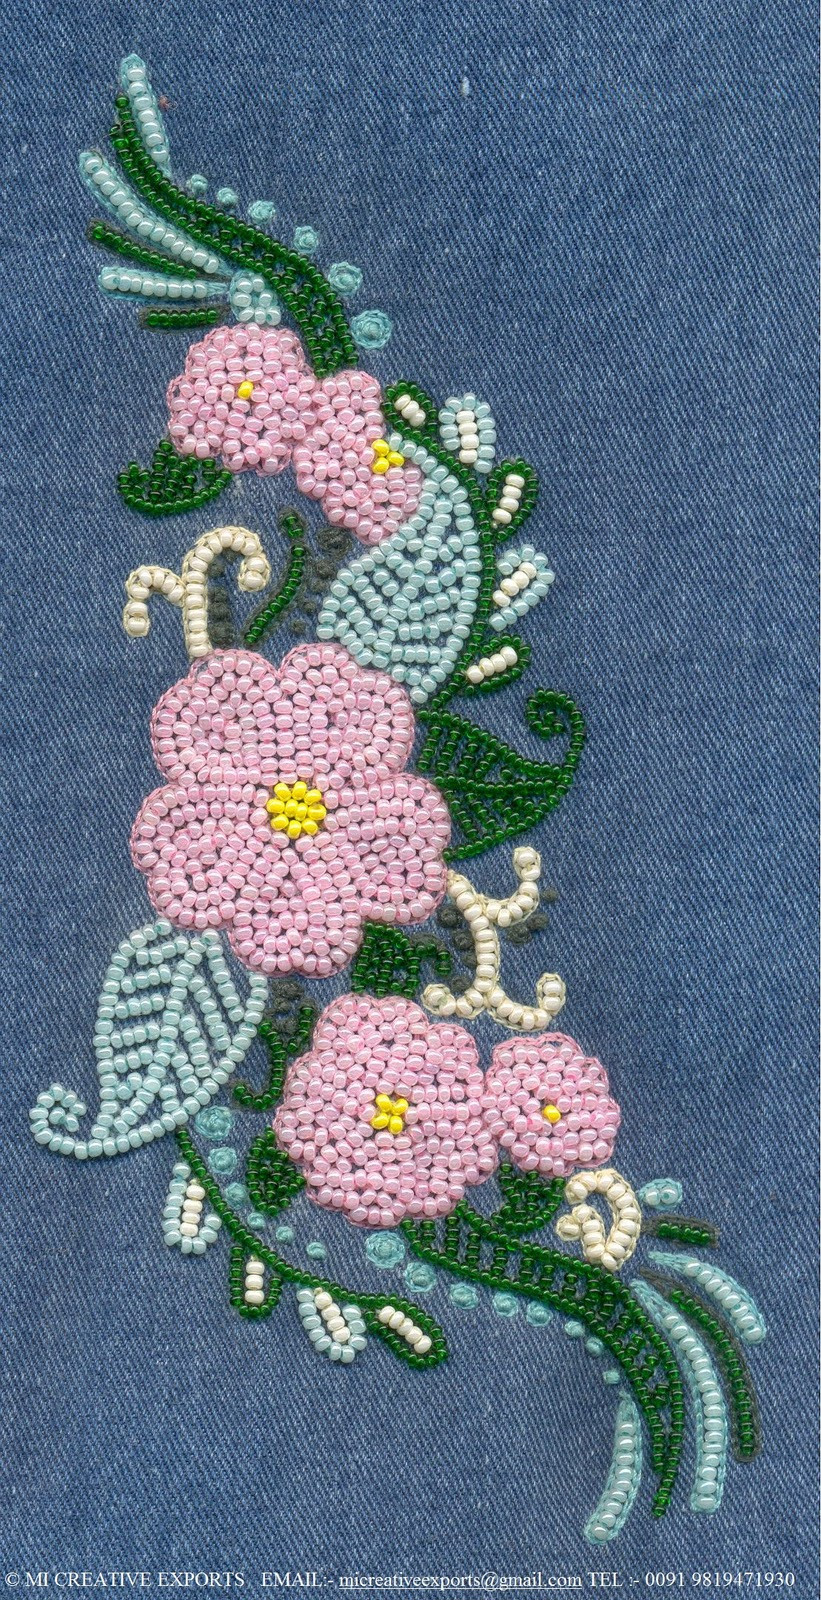 Hand Embroidery Patterns New Hand Embroidery Panies Embroidery Designs Of Adorable 44 Pictures Hand Embroidery Patterns